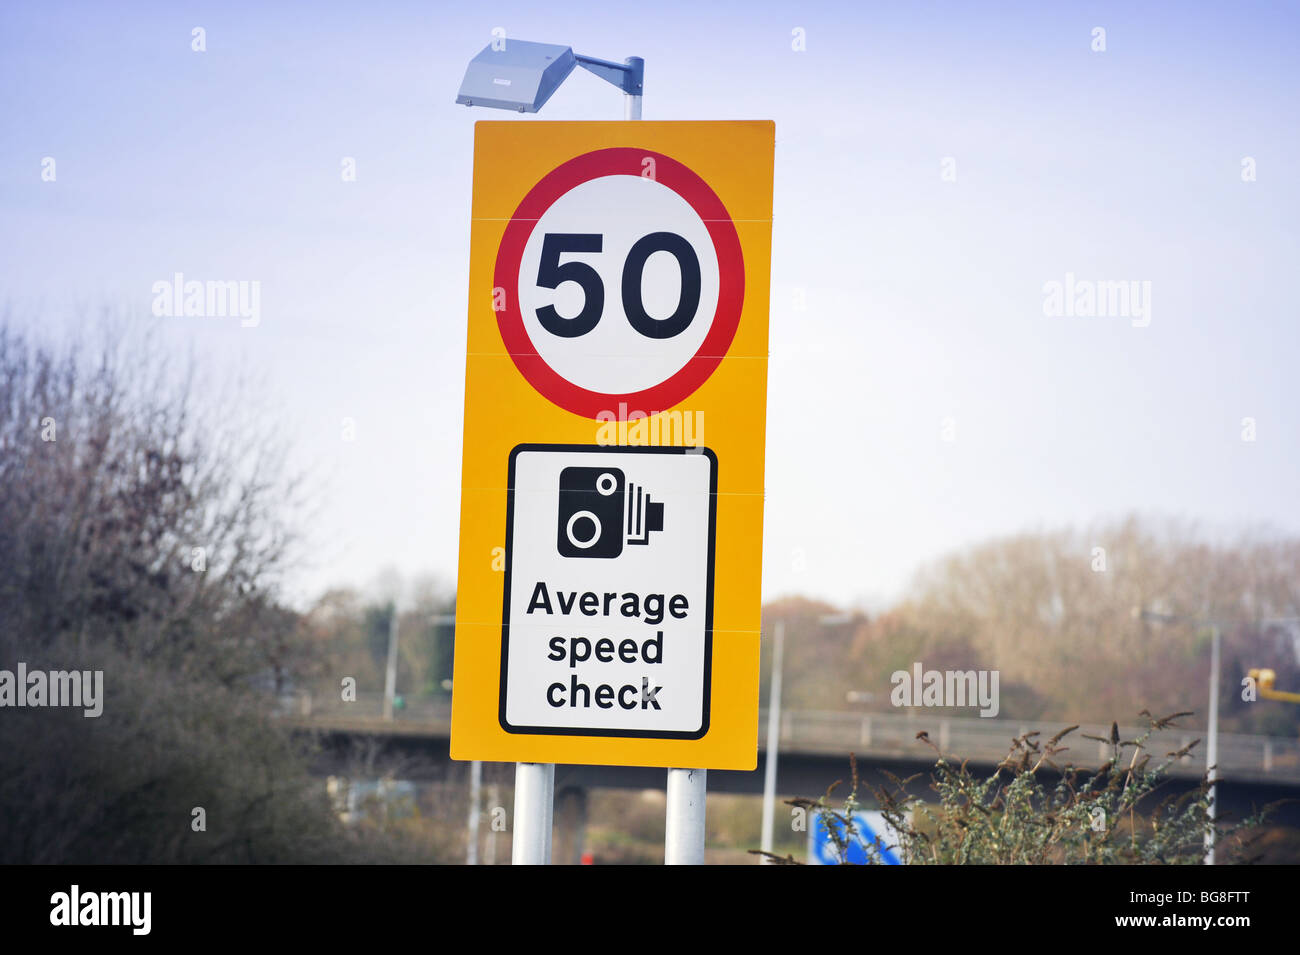 50 Mile an hour Average speed camera warning sighn on the M3 motorway in Surrey England - Stock Image